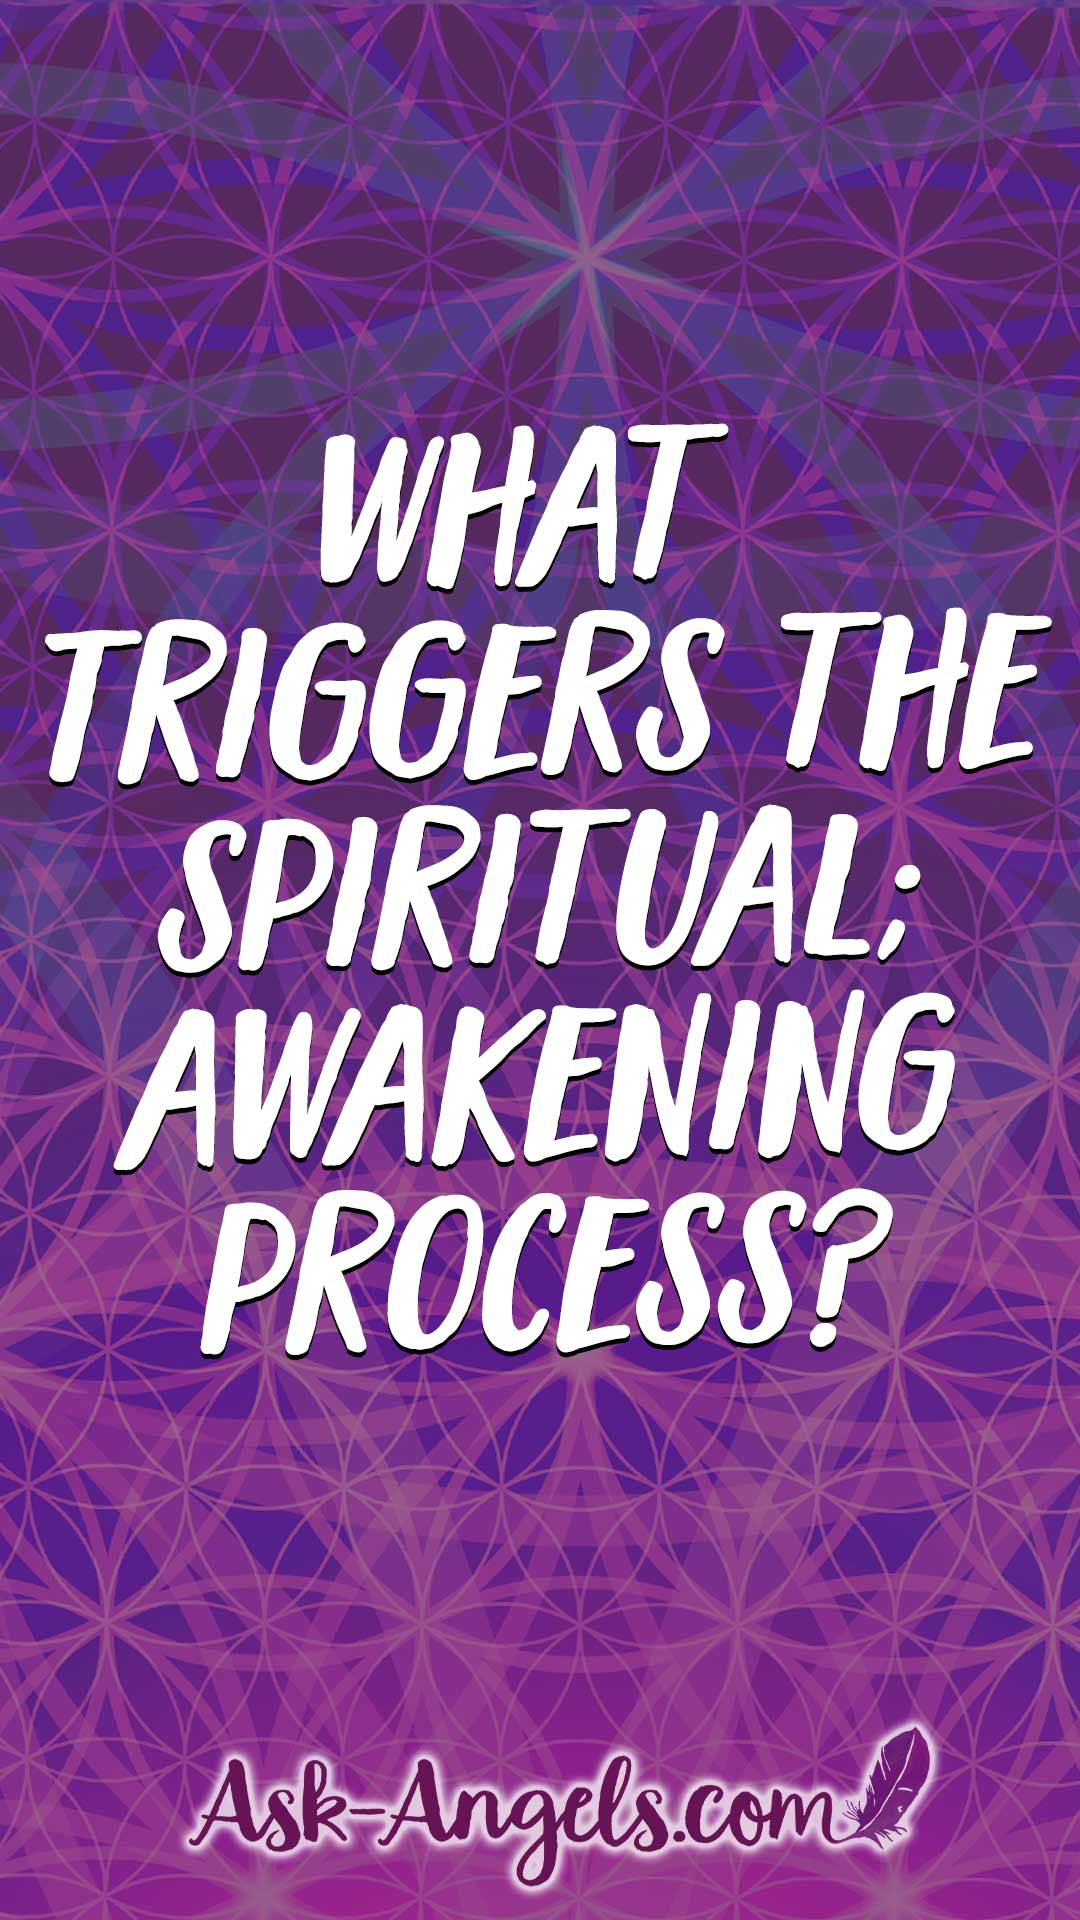 What triggers the spiritual awakening process?